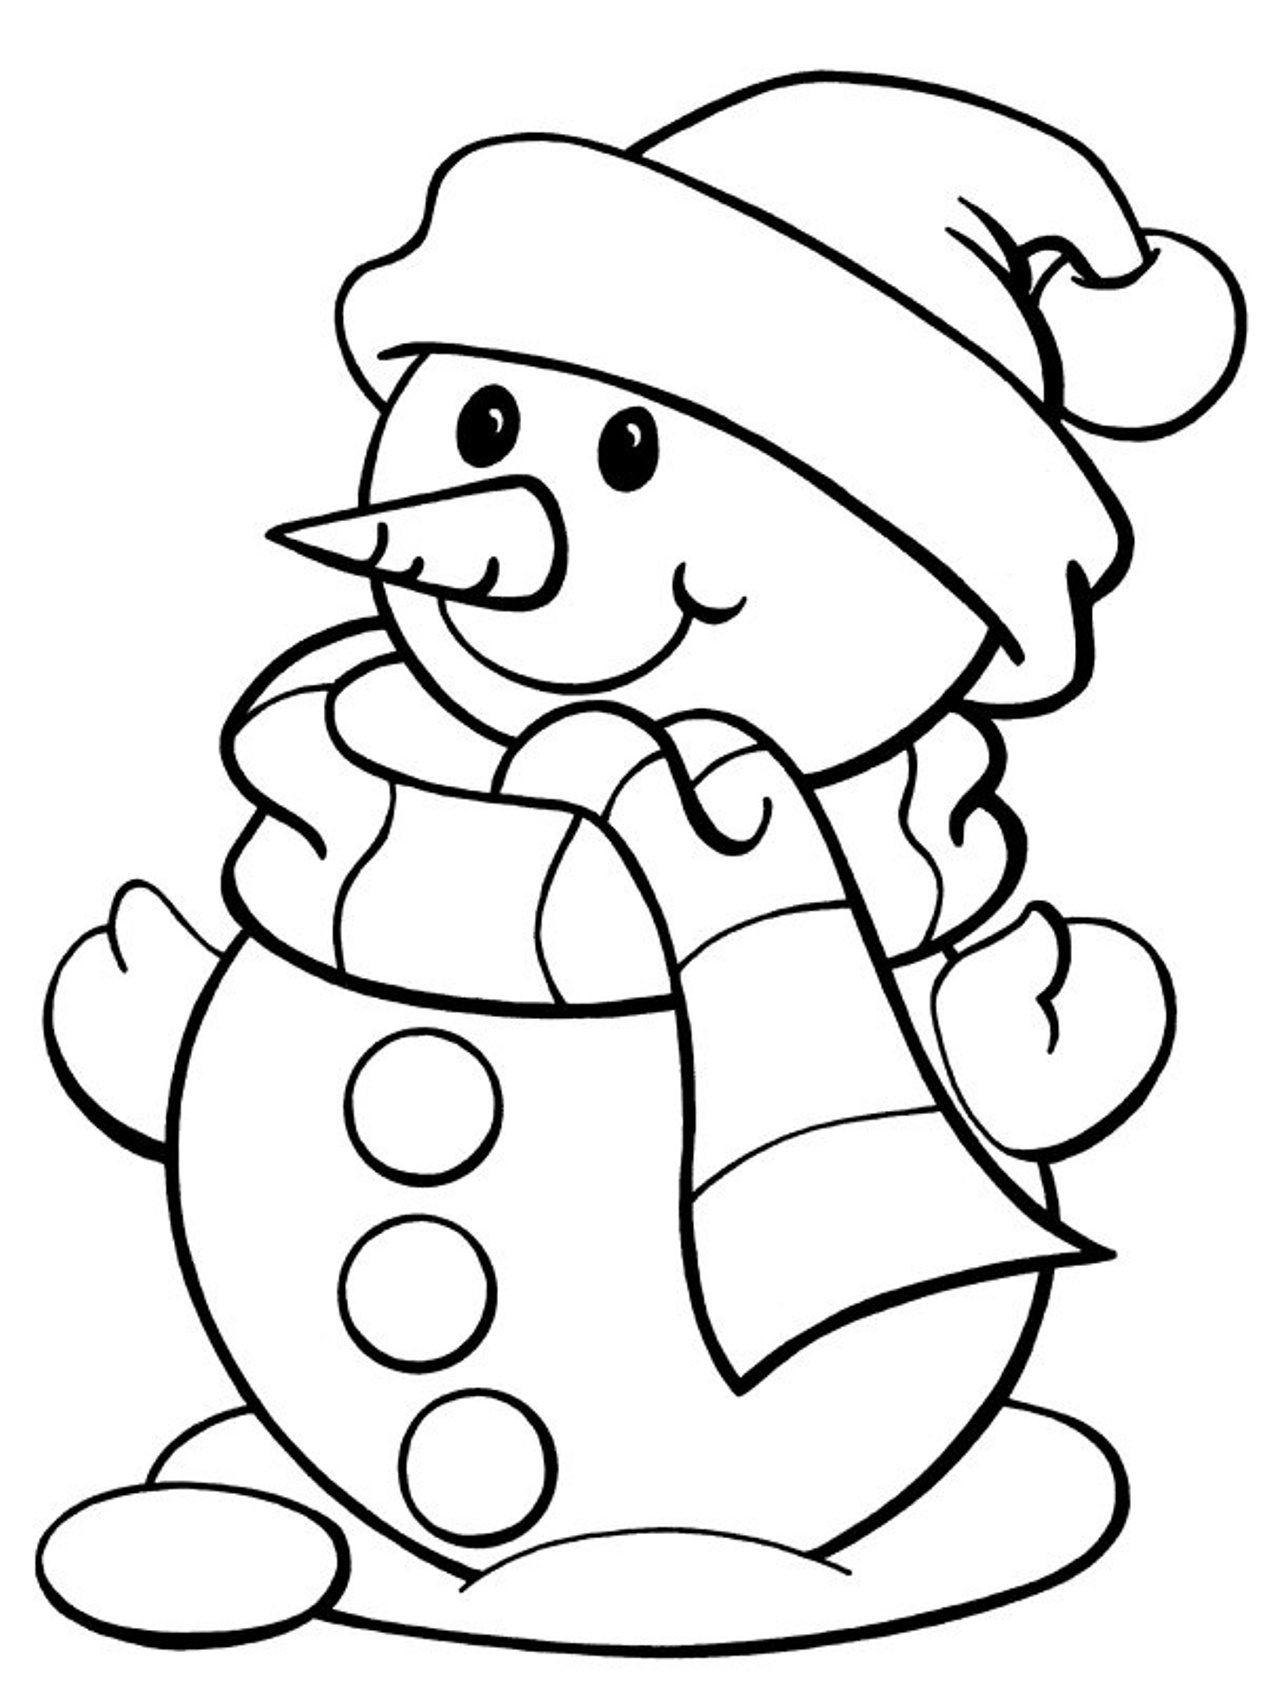 1268x1688 Blank Snowman Coloring Pages Disney Coloring Pages To Print